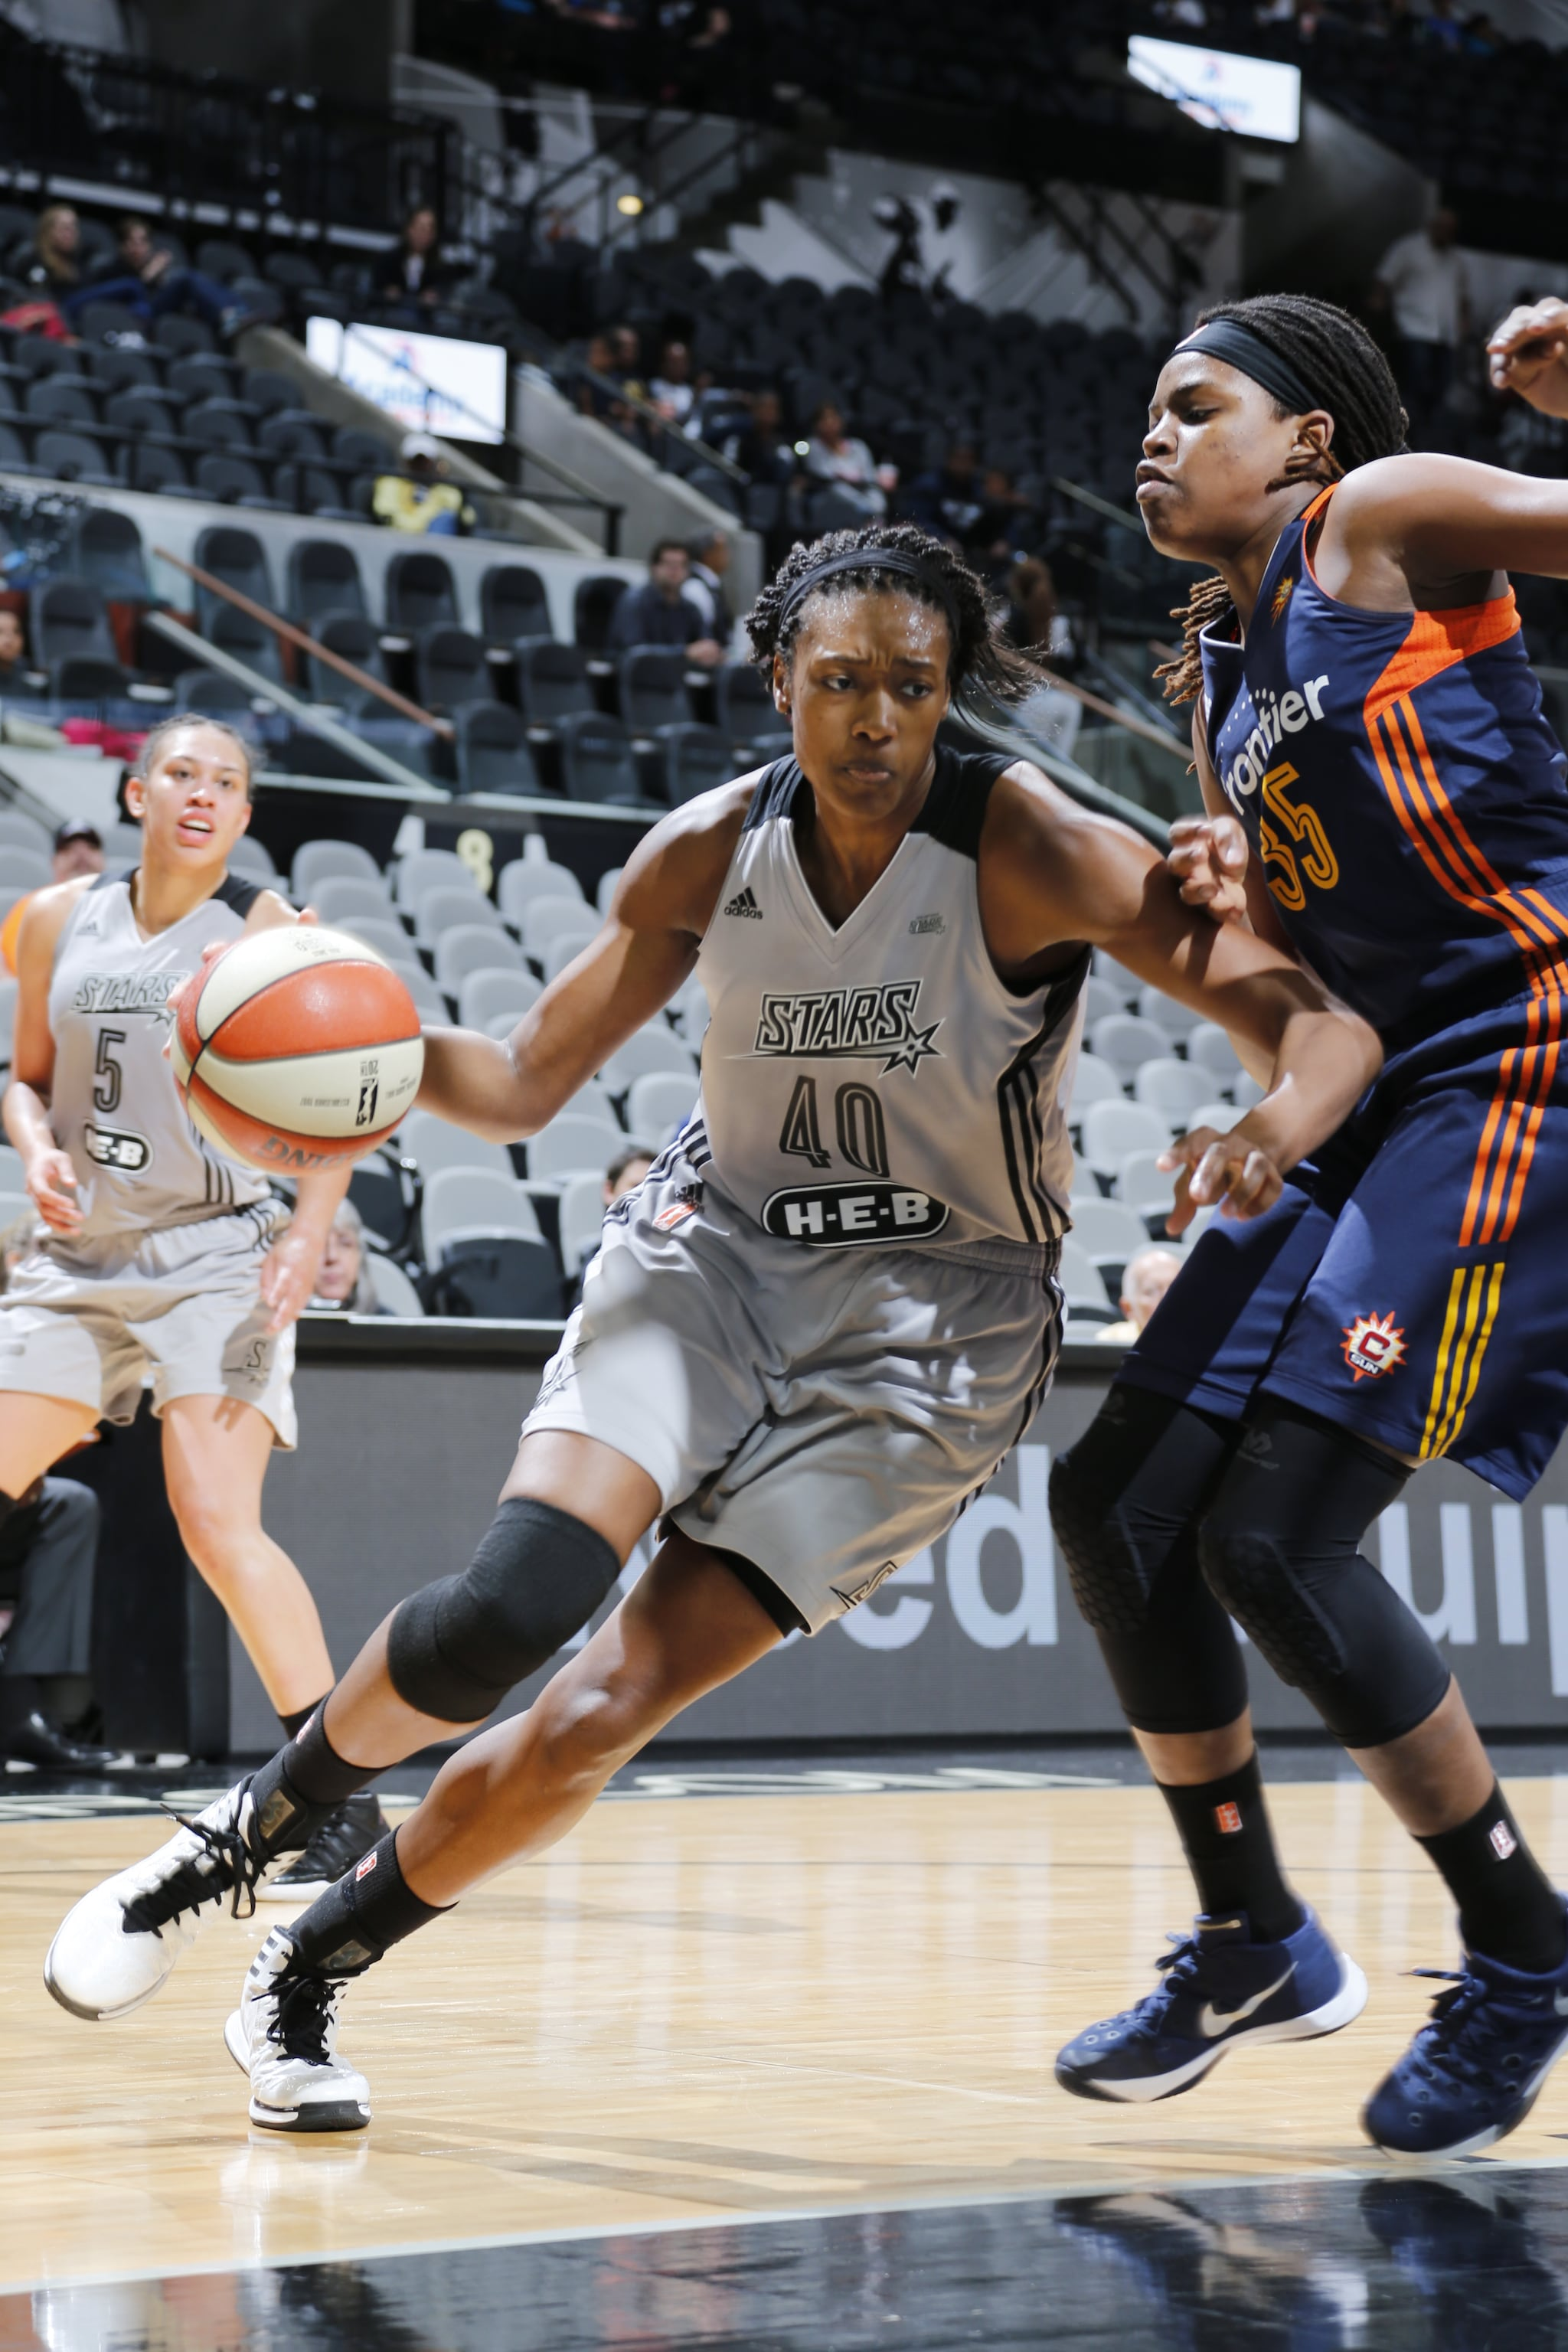 SAN ANTONIO, TX - MAY 19: Kayla Alexander #40 of the San Antonio Stars drives to the basket against the Connecticut Sun on May 19, 2016 at AT&T Center in San Antonio, Texas. NOTE TO USER: User expressly acknowledges and agrees that, by downloading and or using this Photograph, user is consenting to the terms and conditions of the Getty Images License Agreement. Mandatory Copyright Notice: Copyright 2016 NBAE (Photo by Chris Covatta/NBAE via Getty Images)